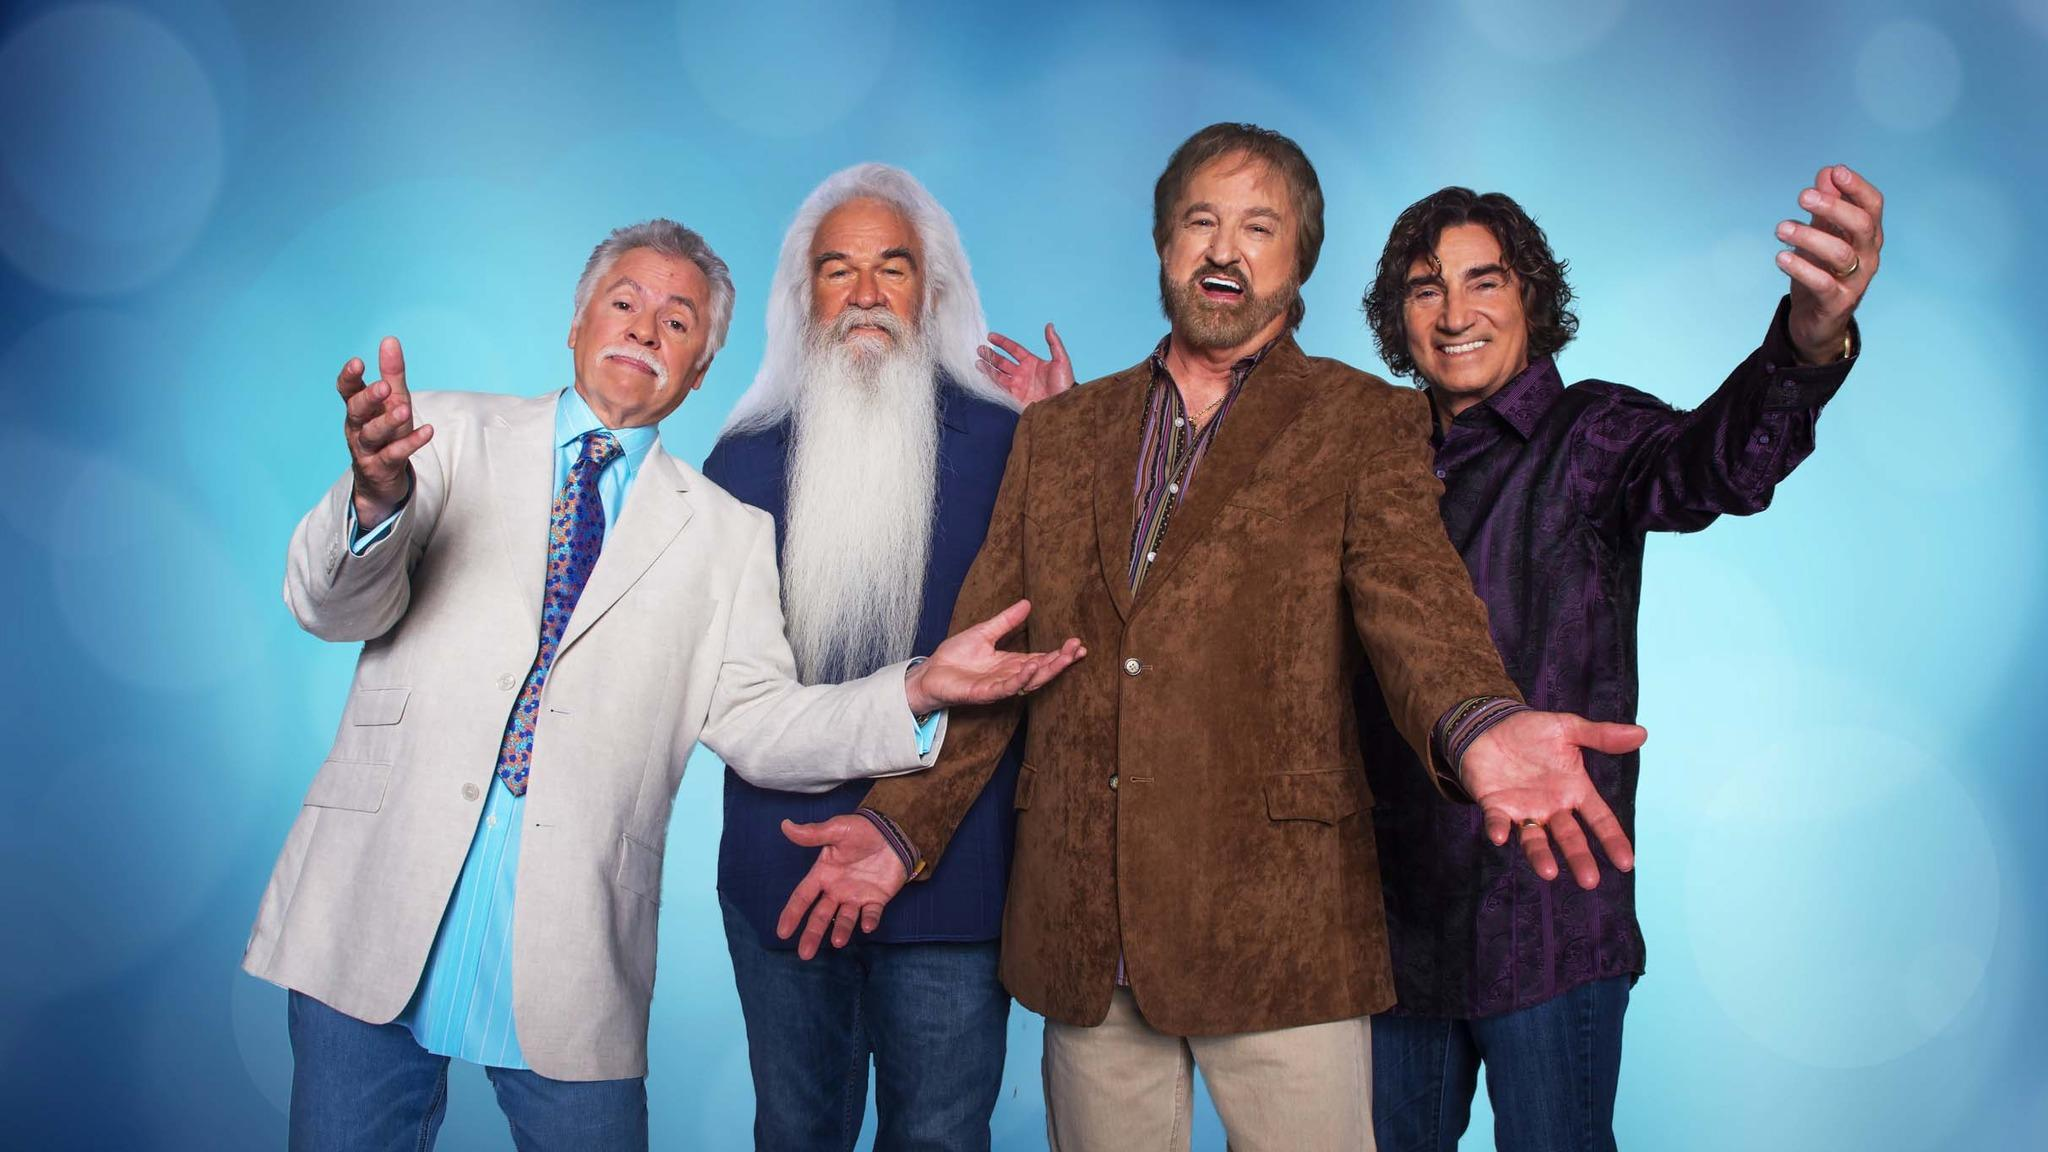 The Oak Ridge Boys Christmas Show at Five Flags Center